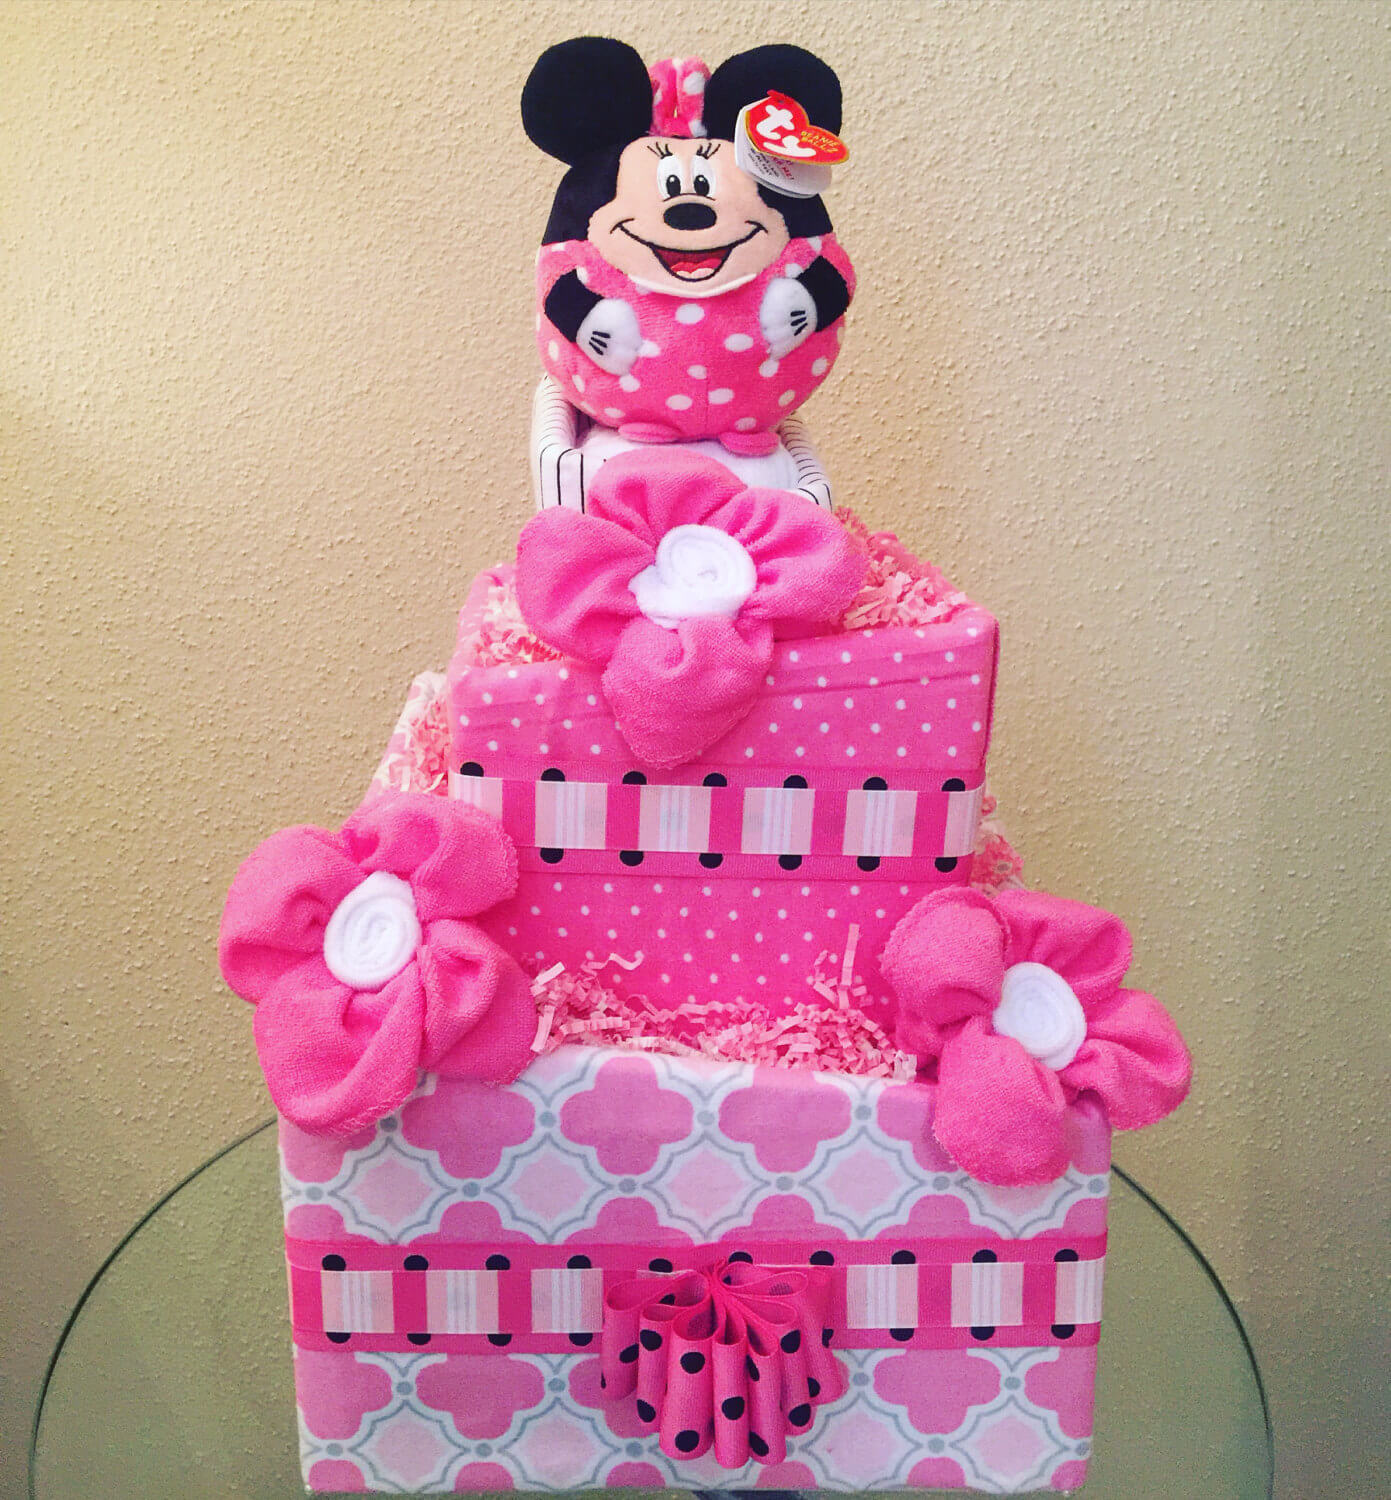 3-Tier Topsy Turvy Baby Girl Minnie Mouse Diaper Cake